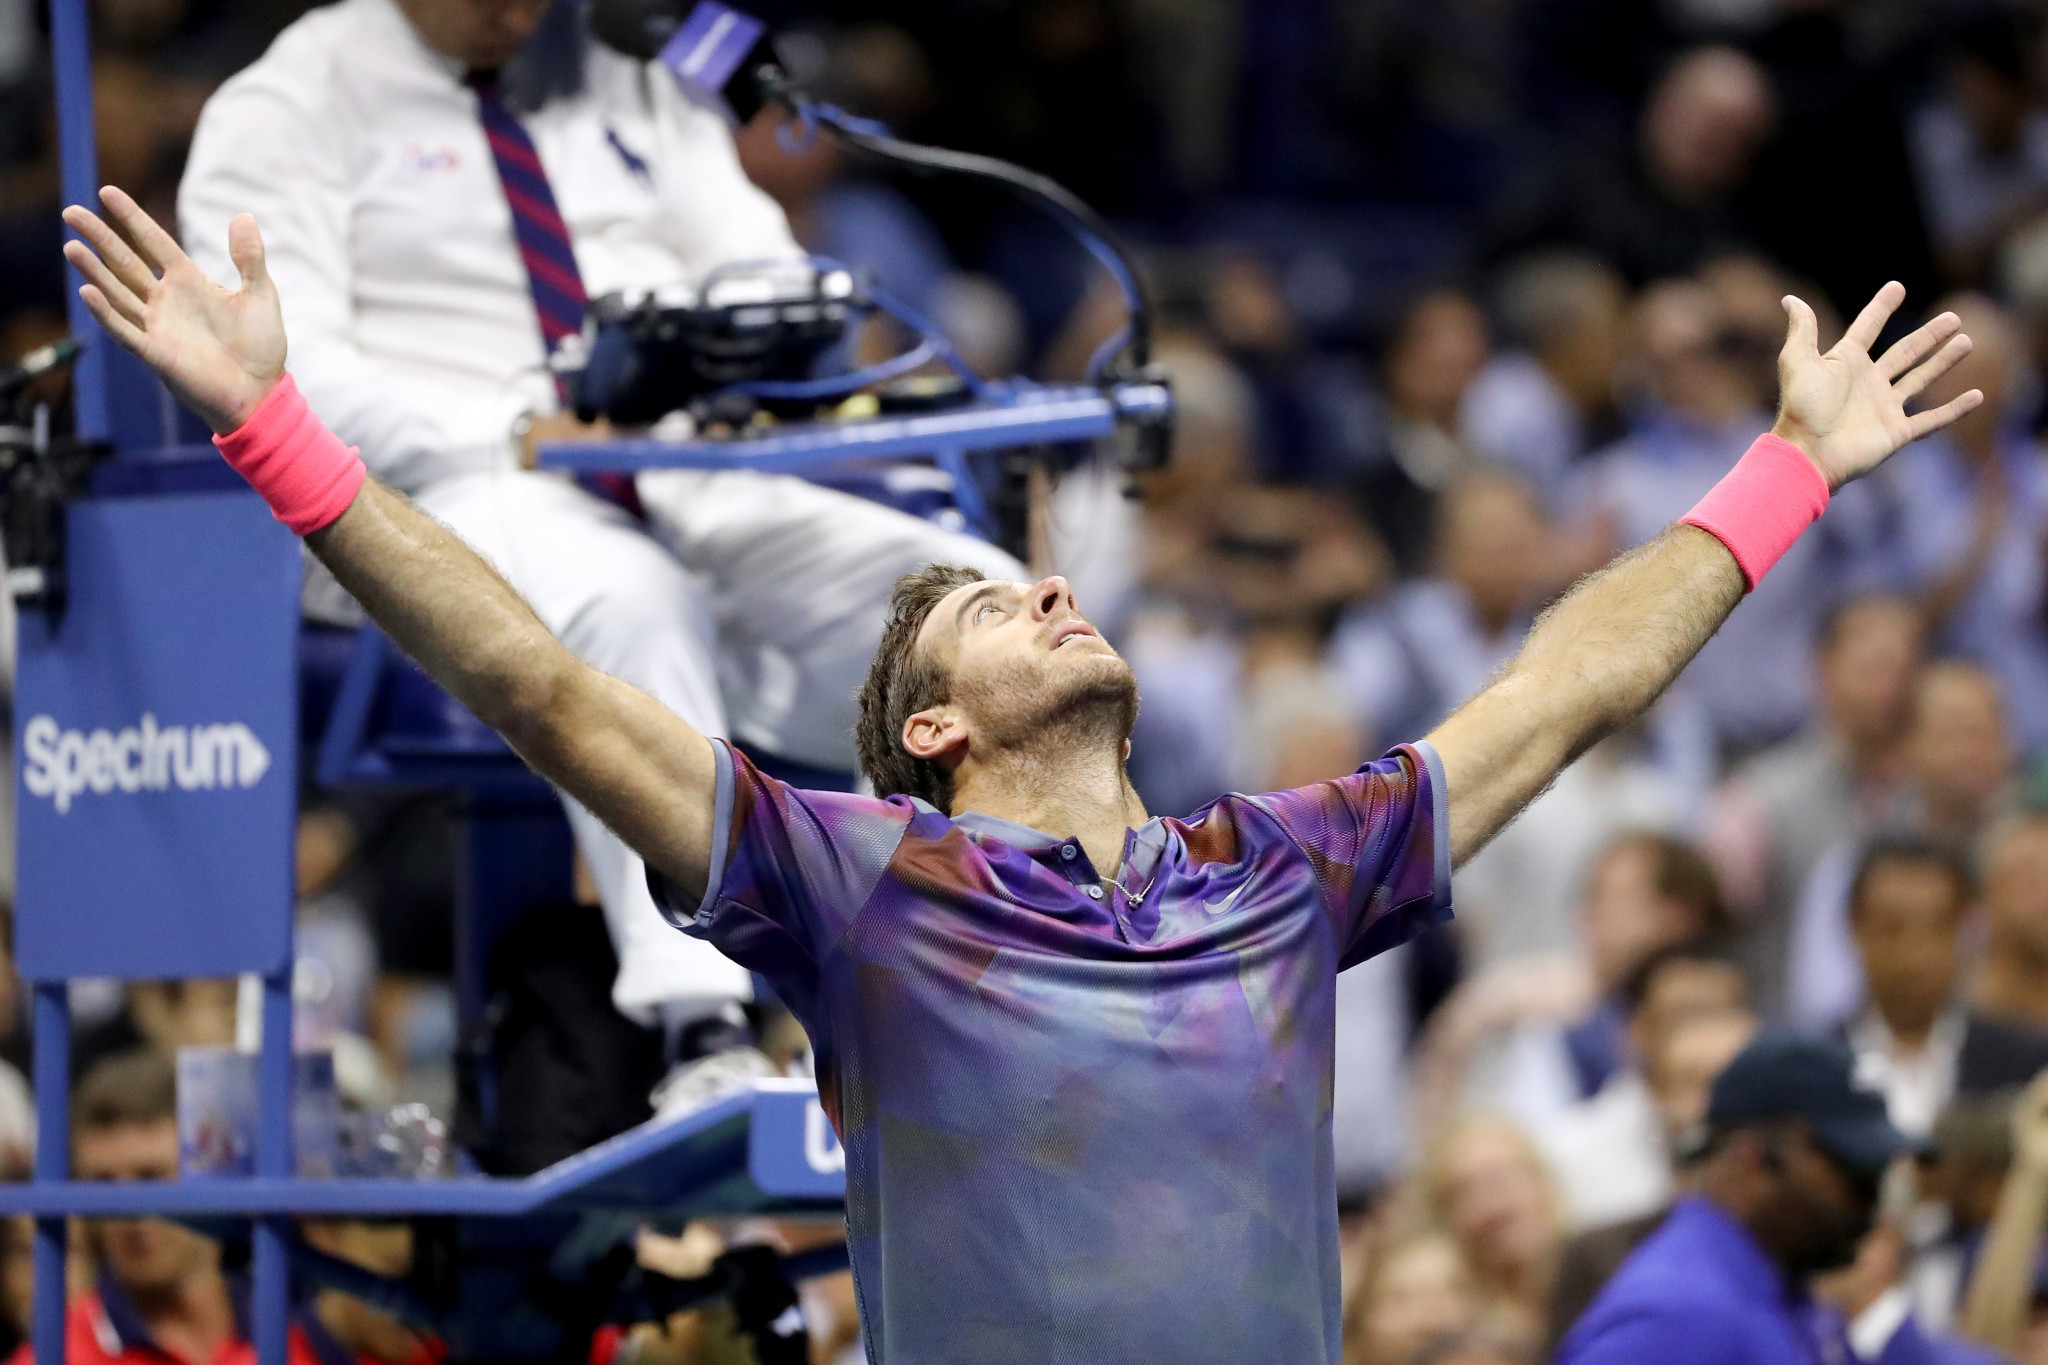 Del Potro beats Federer to reach last four as all-American women's semi-final line-up confirmed at US Open